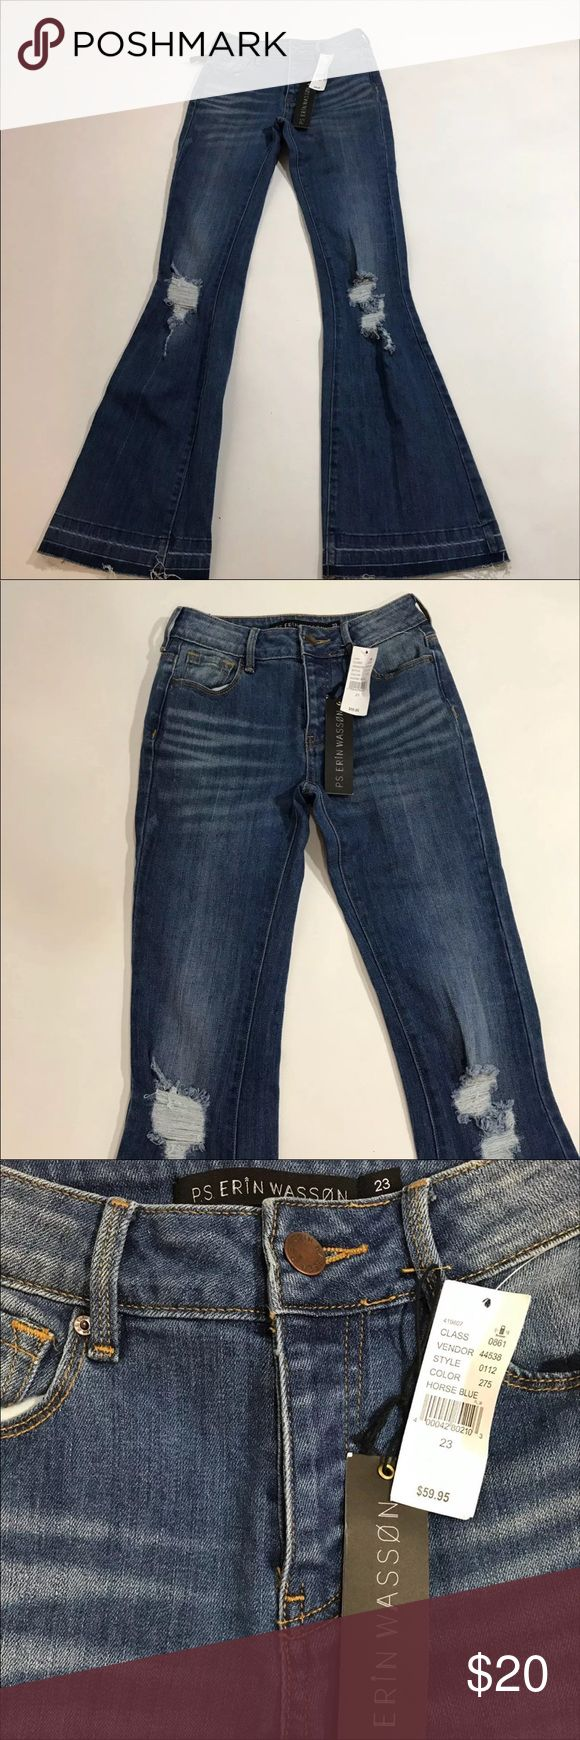 Ps Erin wasson Size 23 jeans 32 in inseam  39 in long 12 in across top ps erin wasson Jeans Flare & Wide Leg